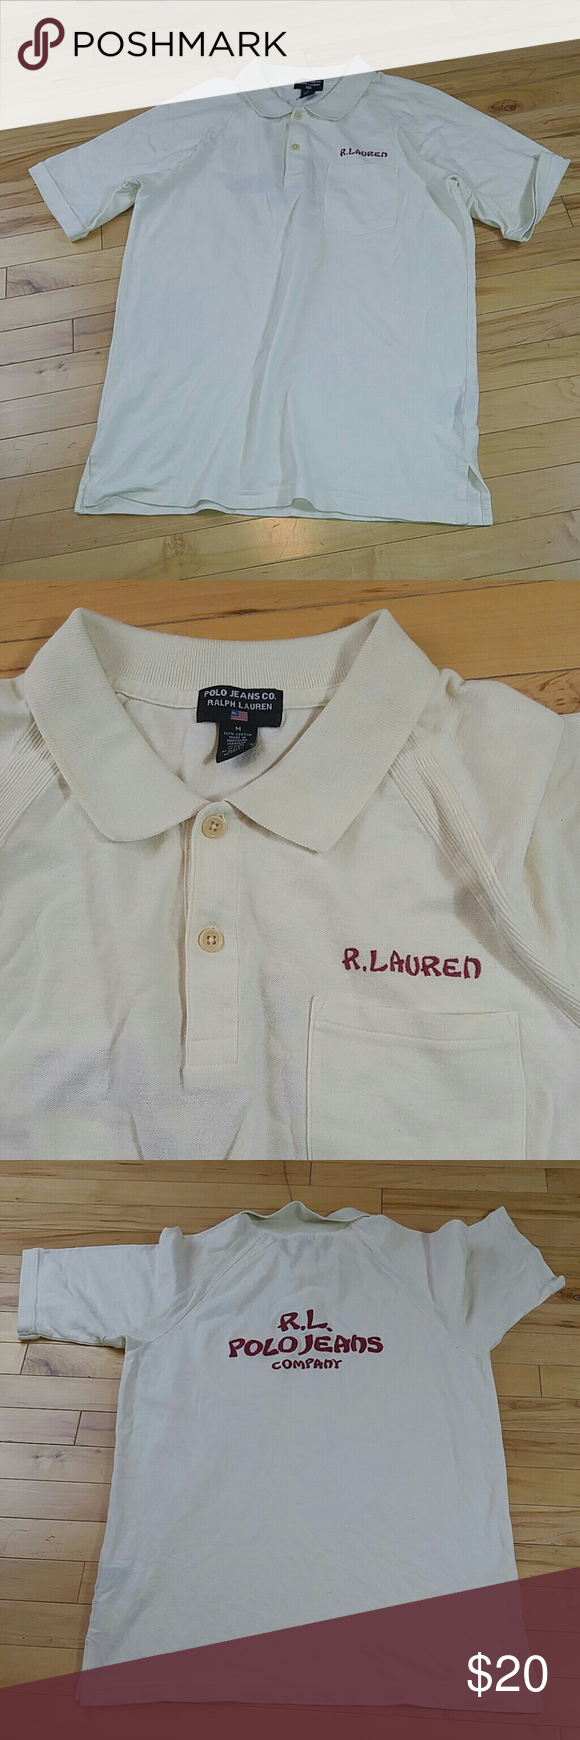 R.L. polo jeans company Ralph Lauren Polo size M Polo jean company Ralph lauren  White Polo great condition Polo by Ralph Lauren Shirts Polos